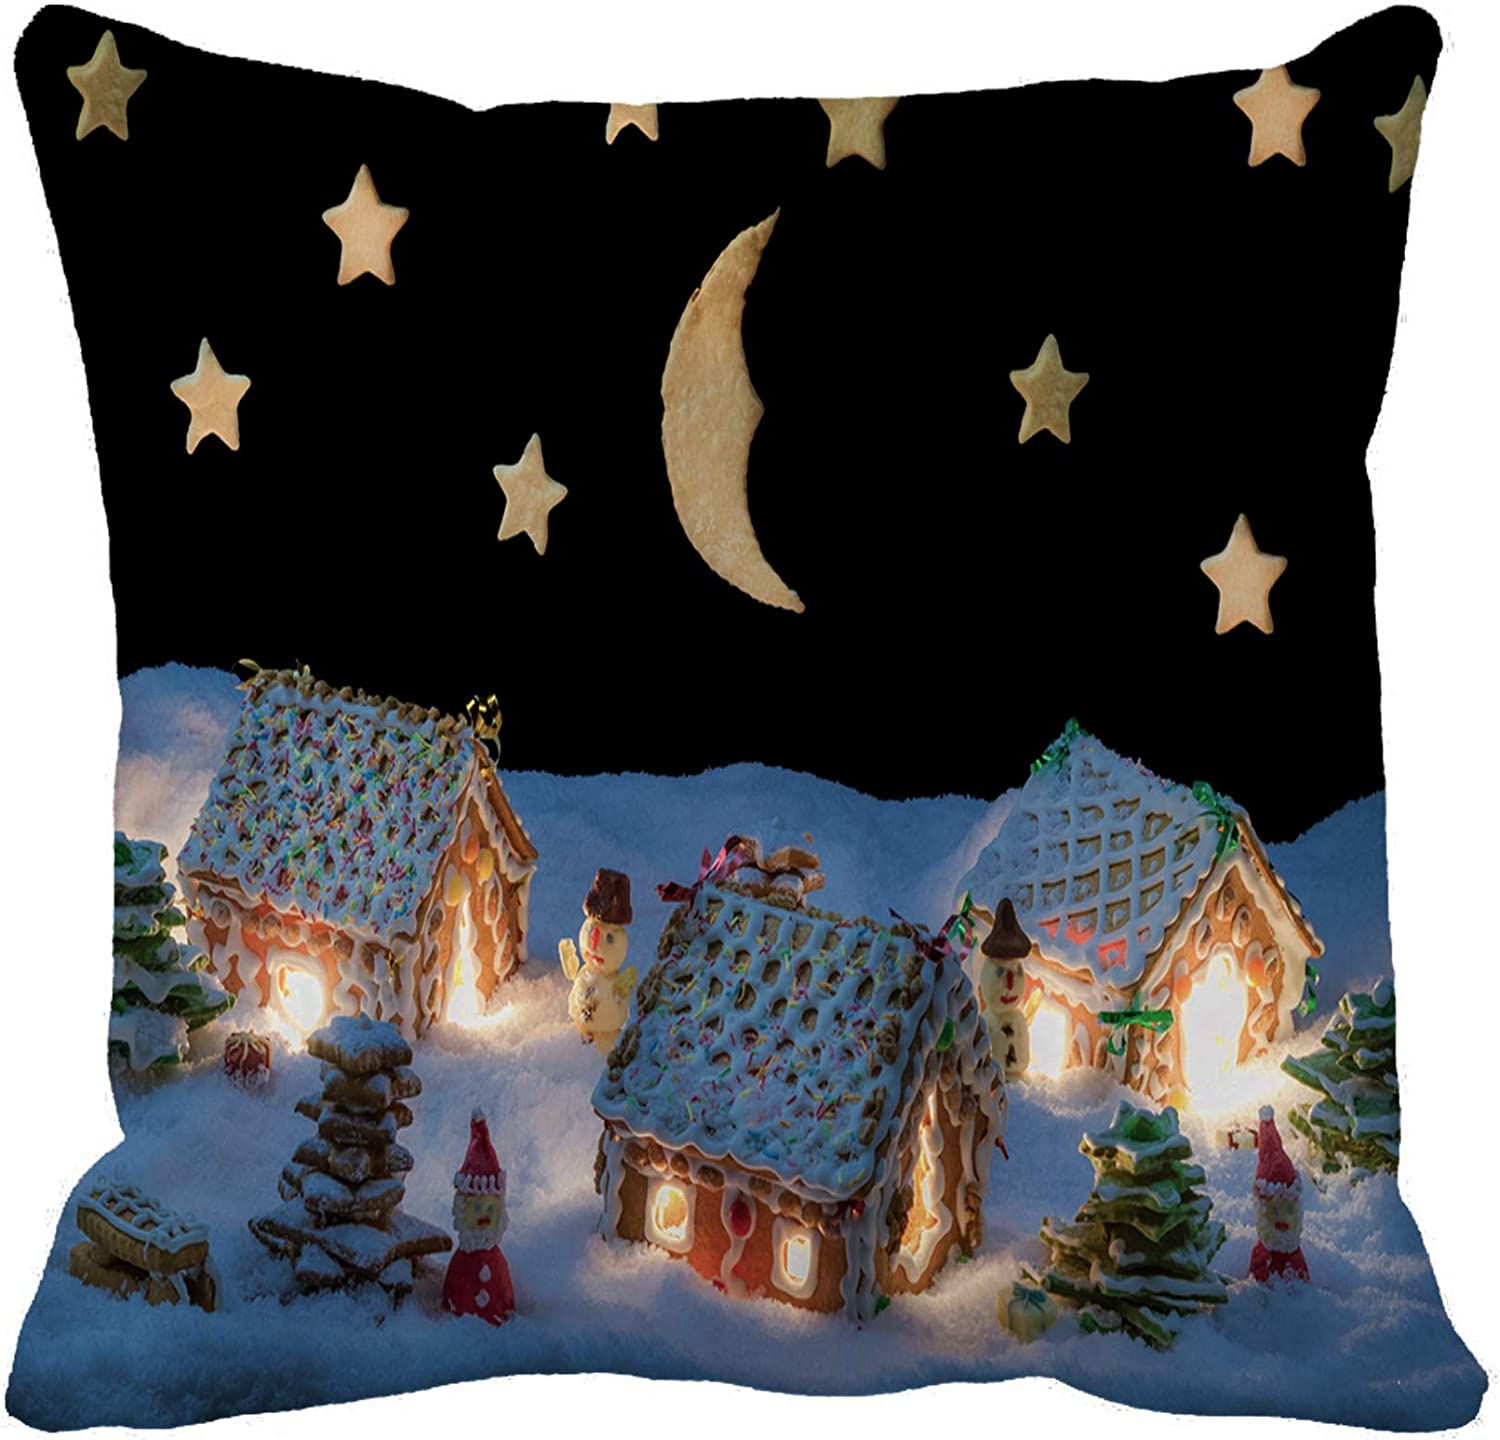 Awowee Throw Pillow Cover House Gingerbread Home at The Night in Winter Cake 18x18 Inches Pillowcase Home Decorative Square Pillow Case Cushion Cover